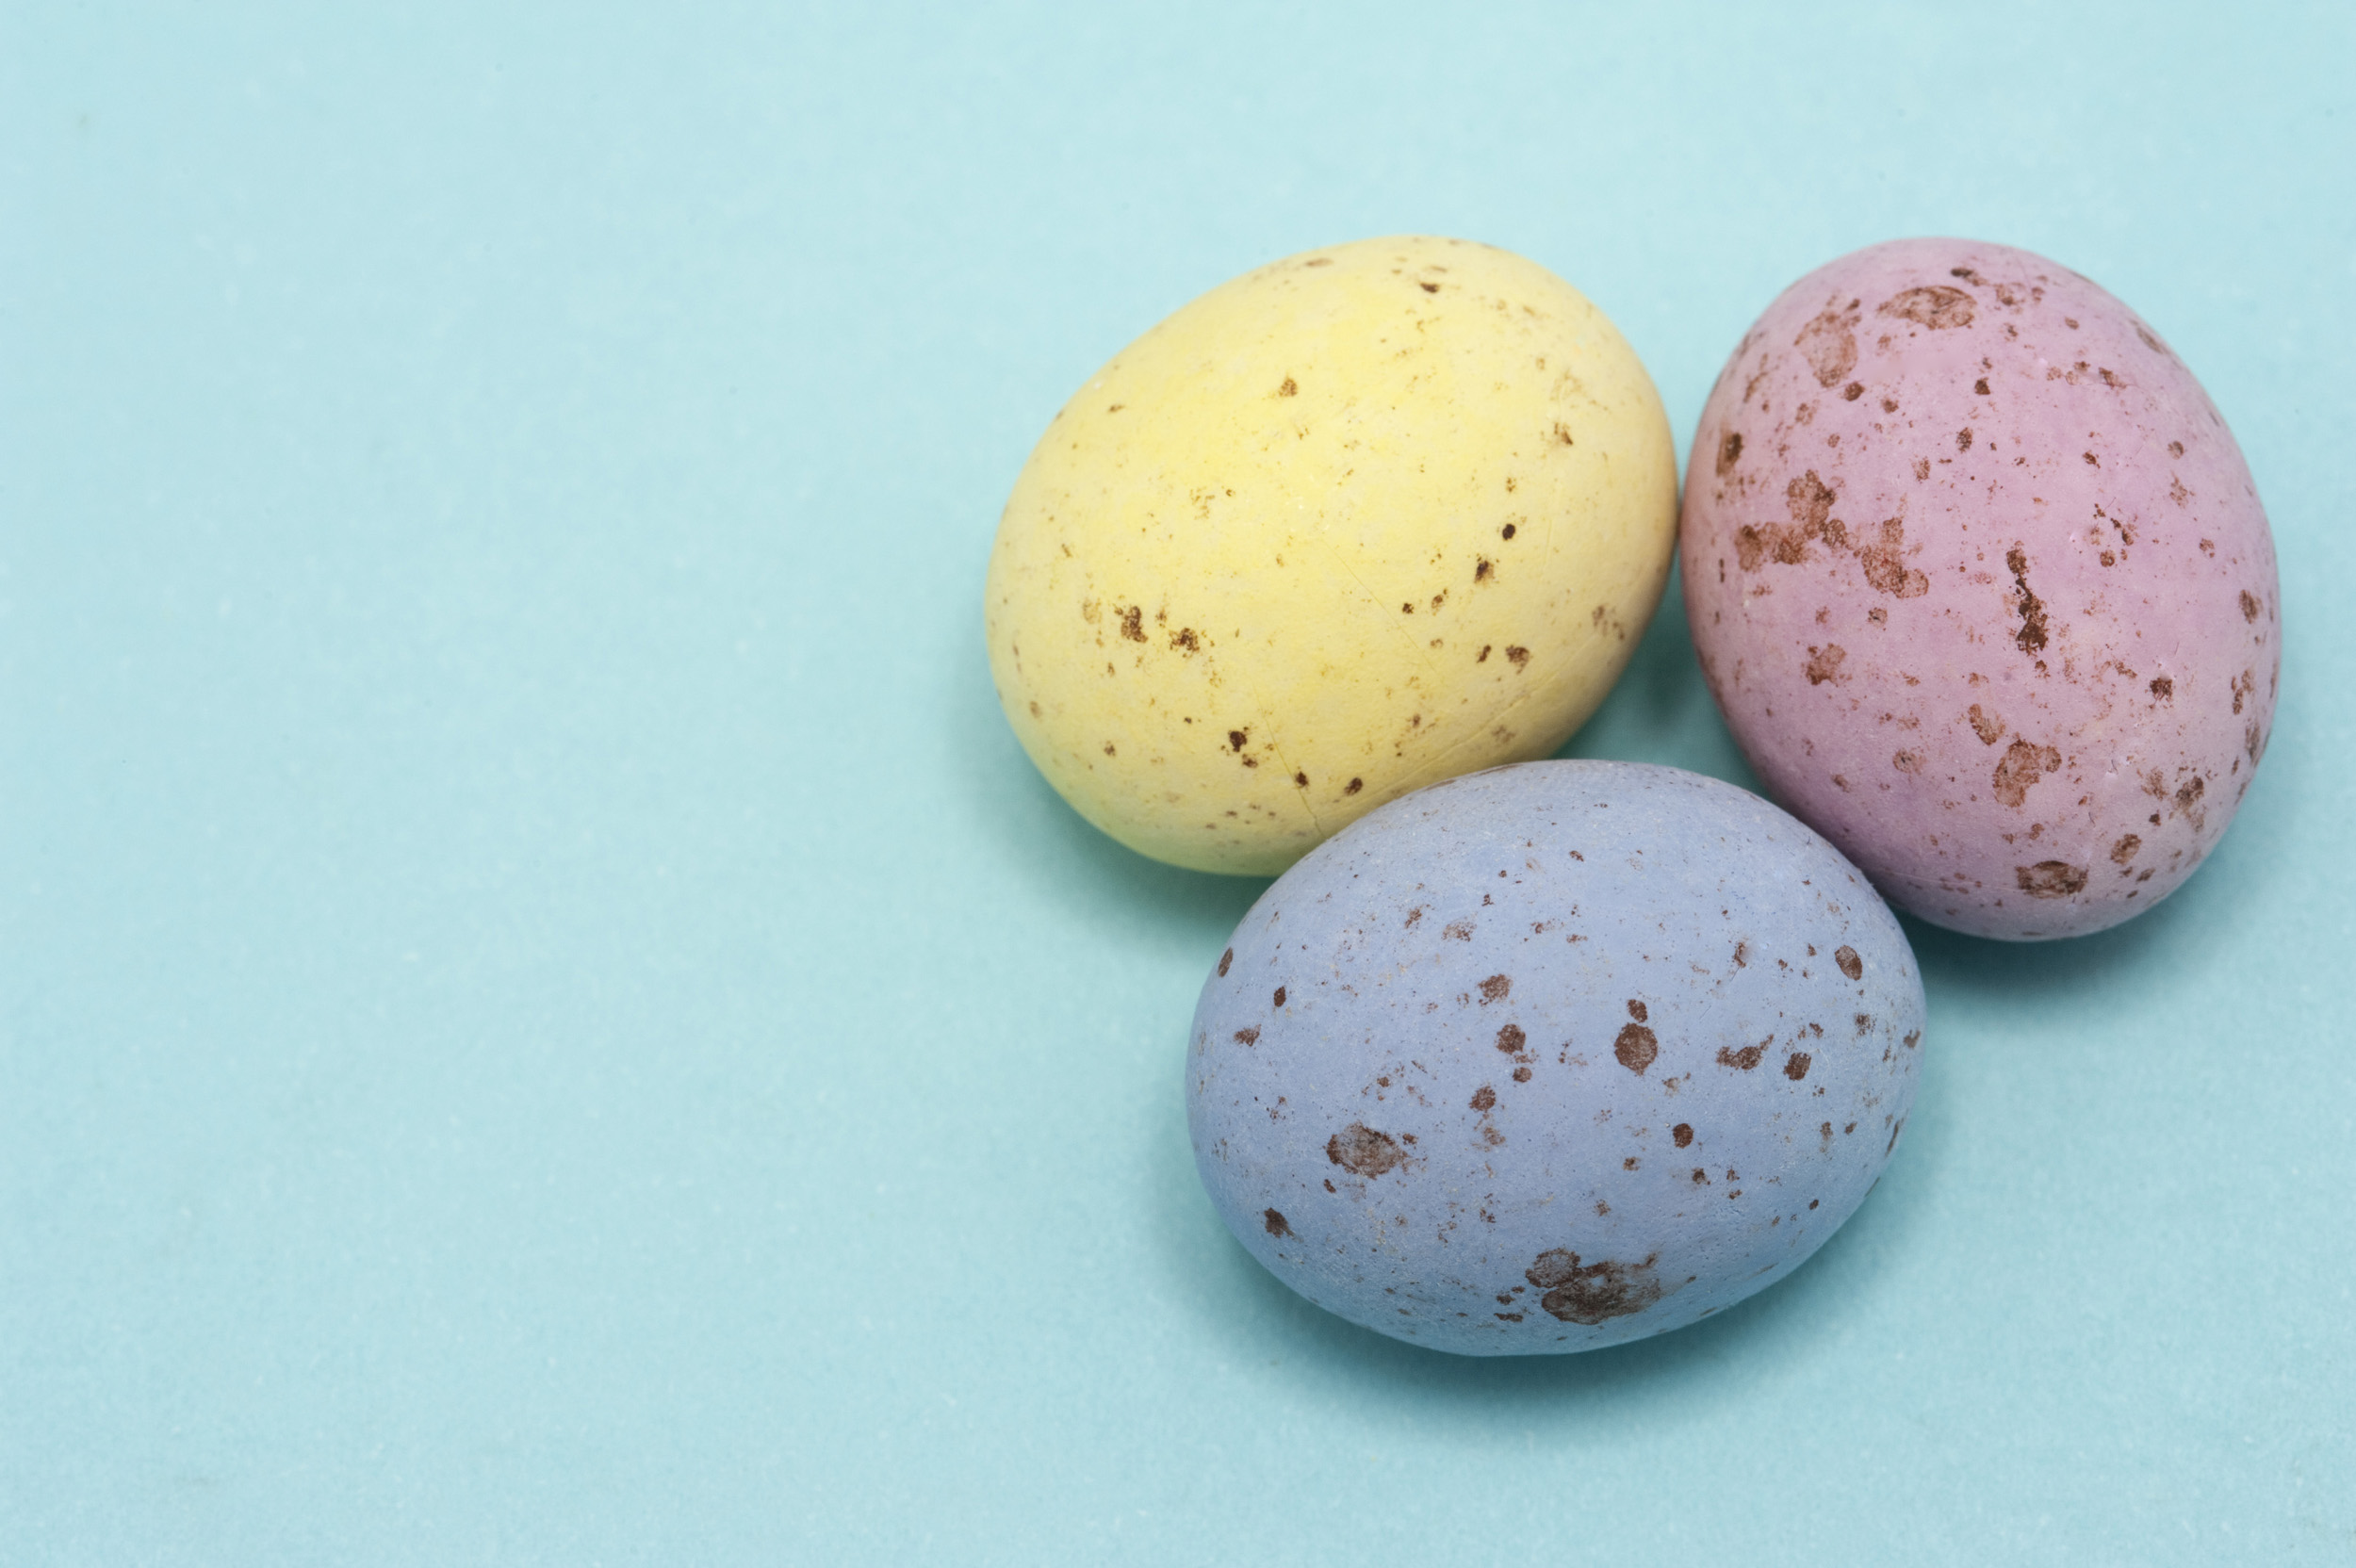 free image of pastel speckled easter eggs